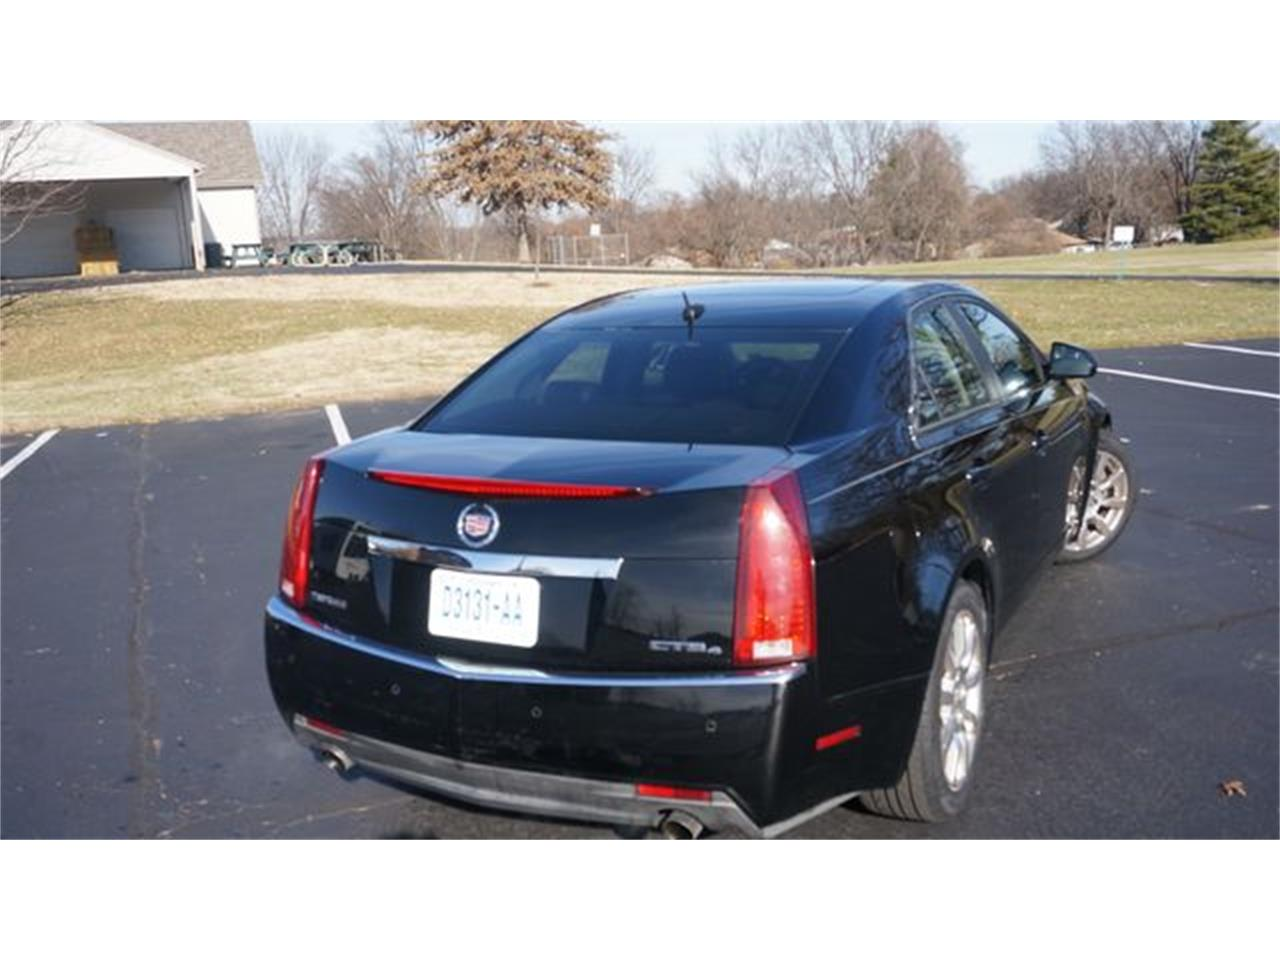 For Sale: 2008 Cadillac CTS in Valley Park, Missouri